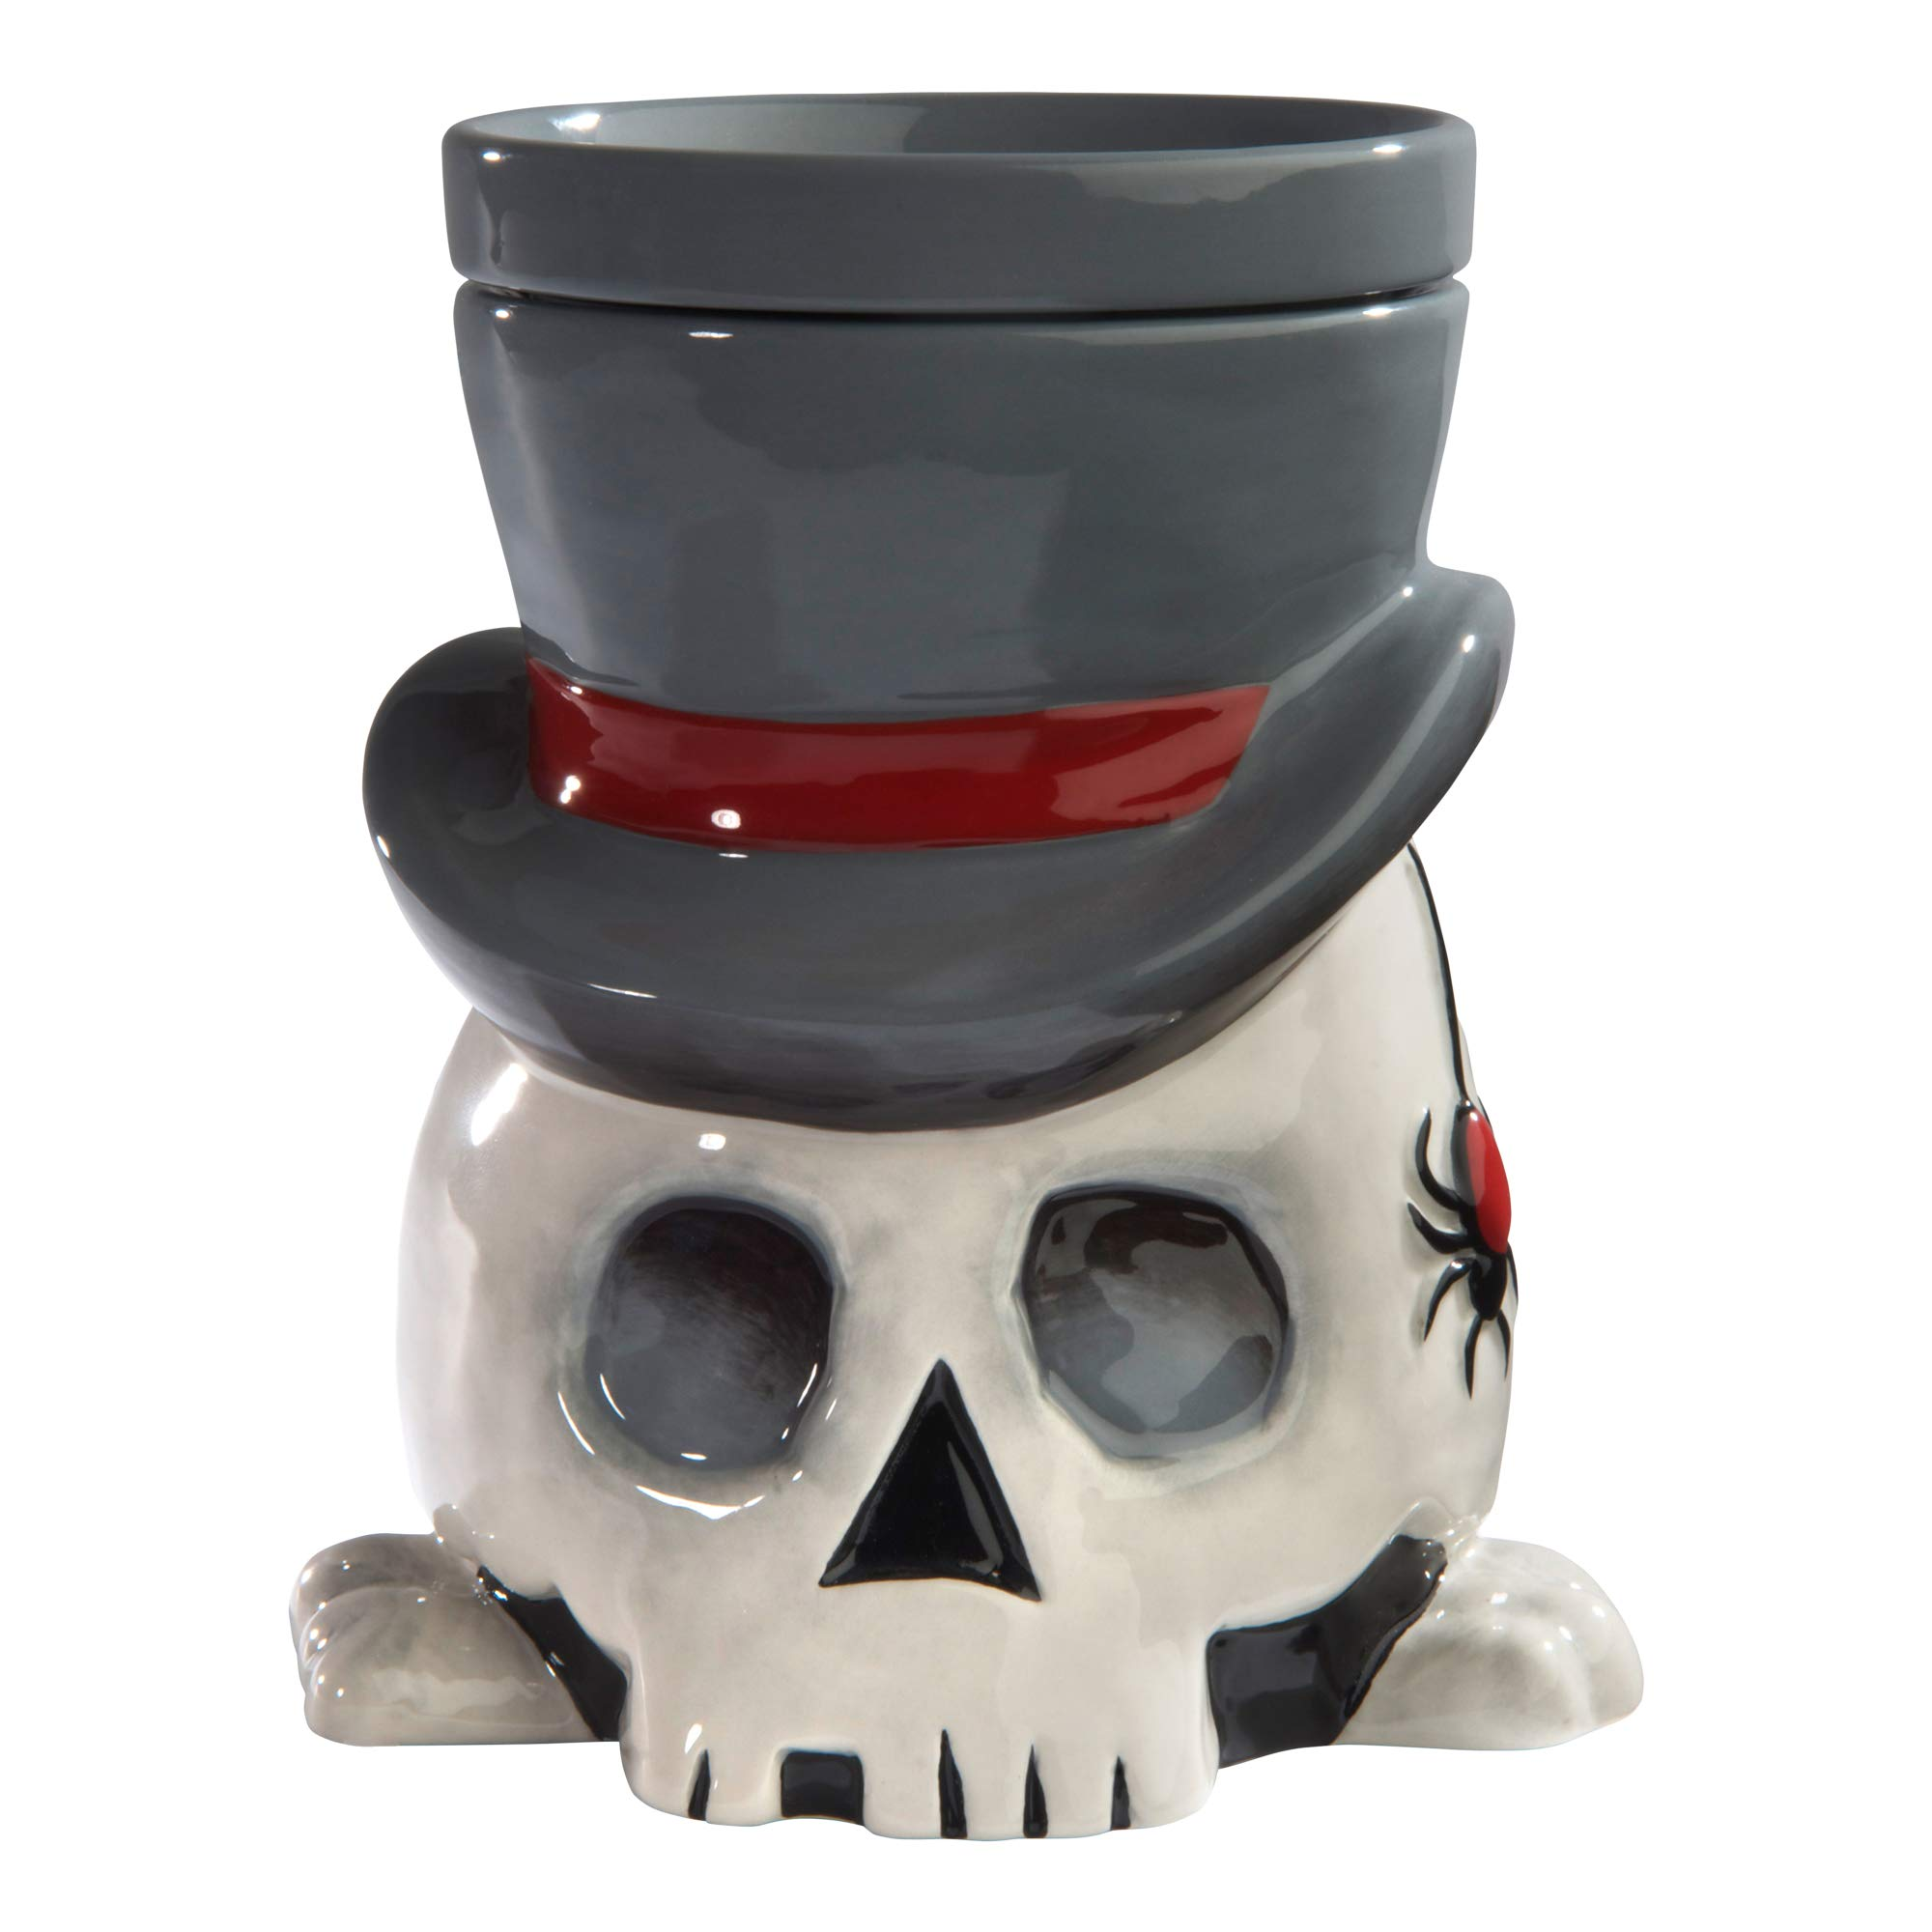 The Undertaker Horror Style Wax Warmer by Halloween Forevermore